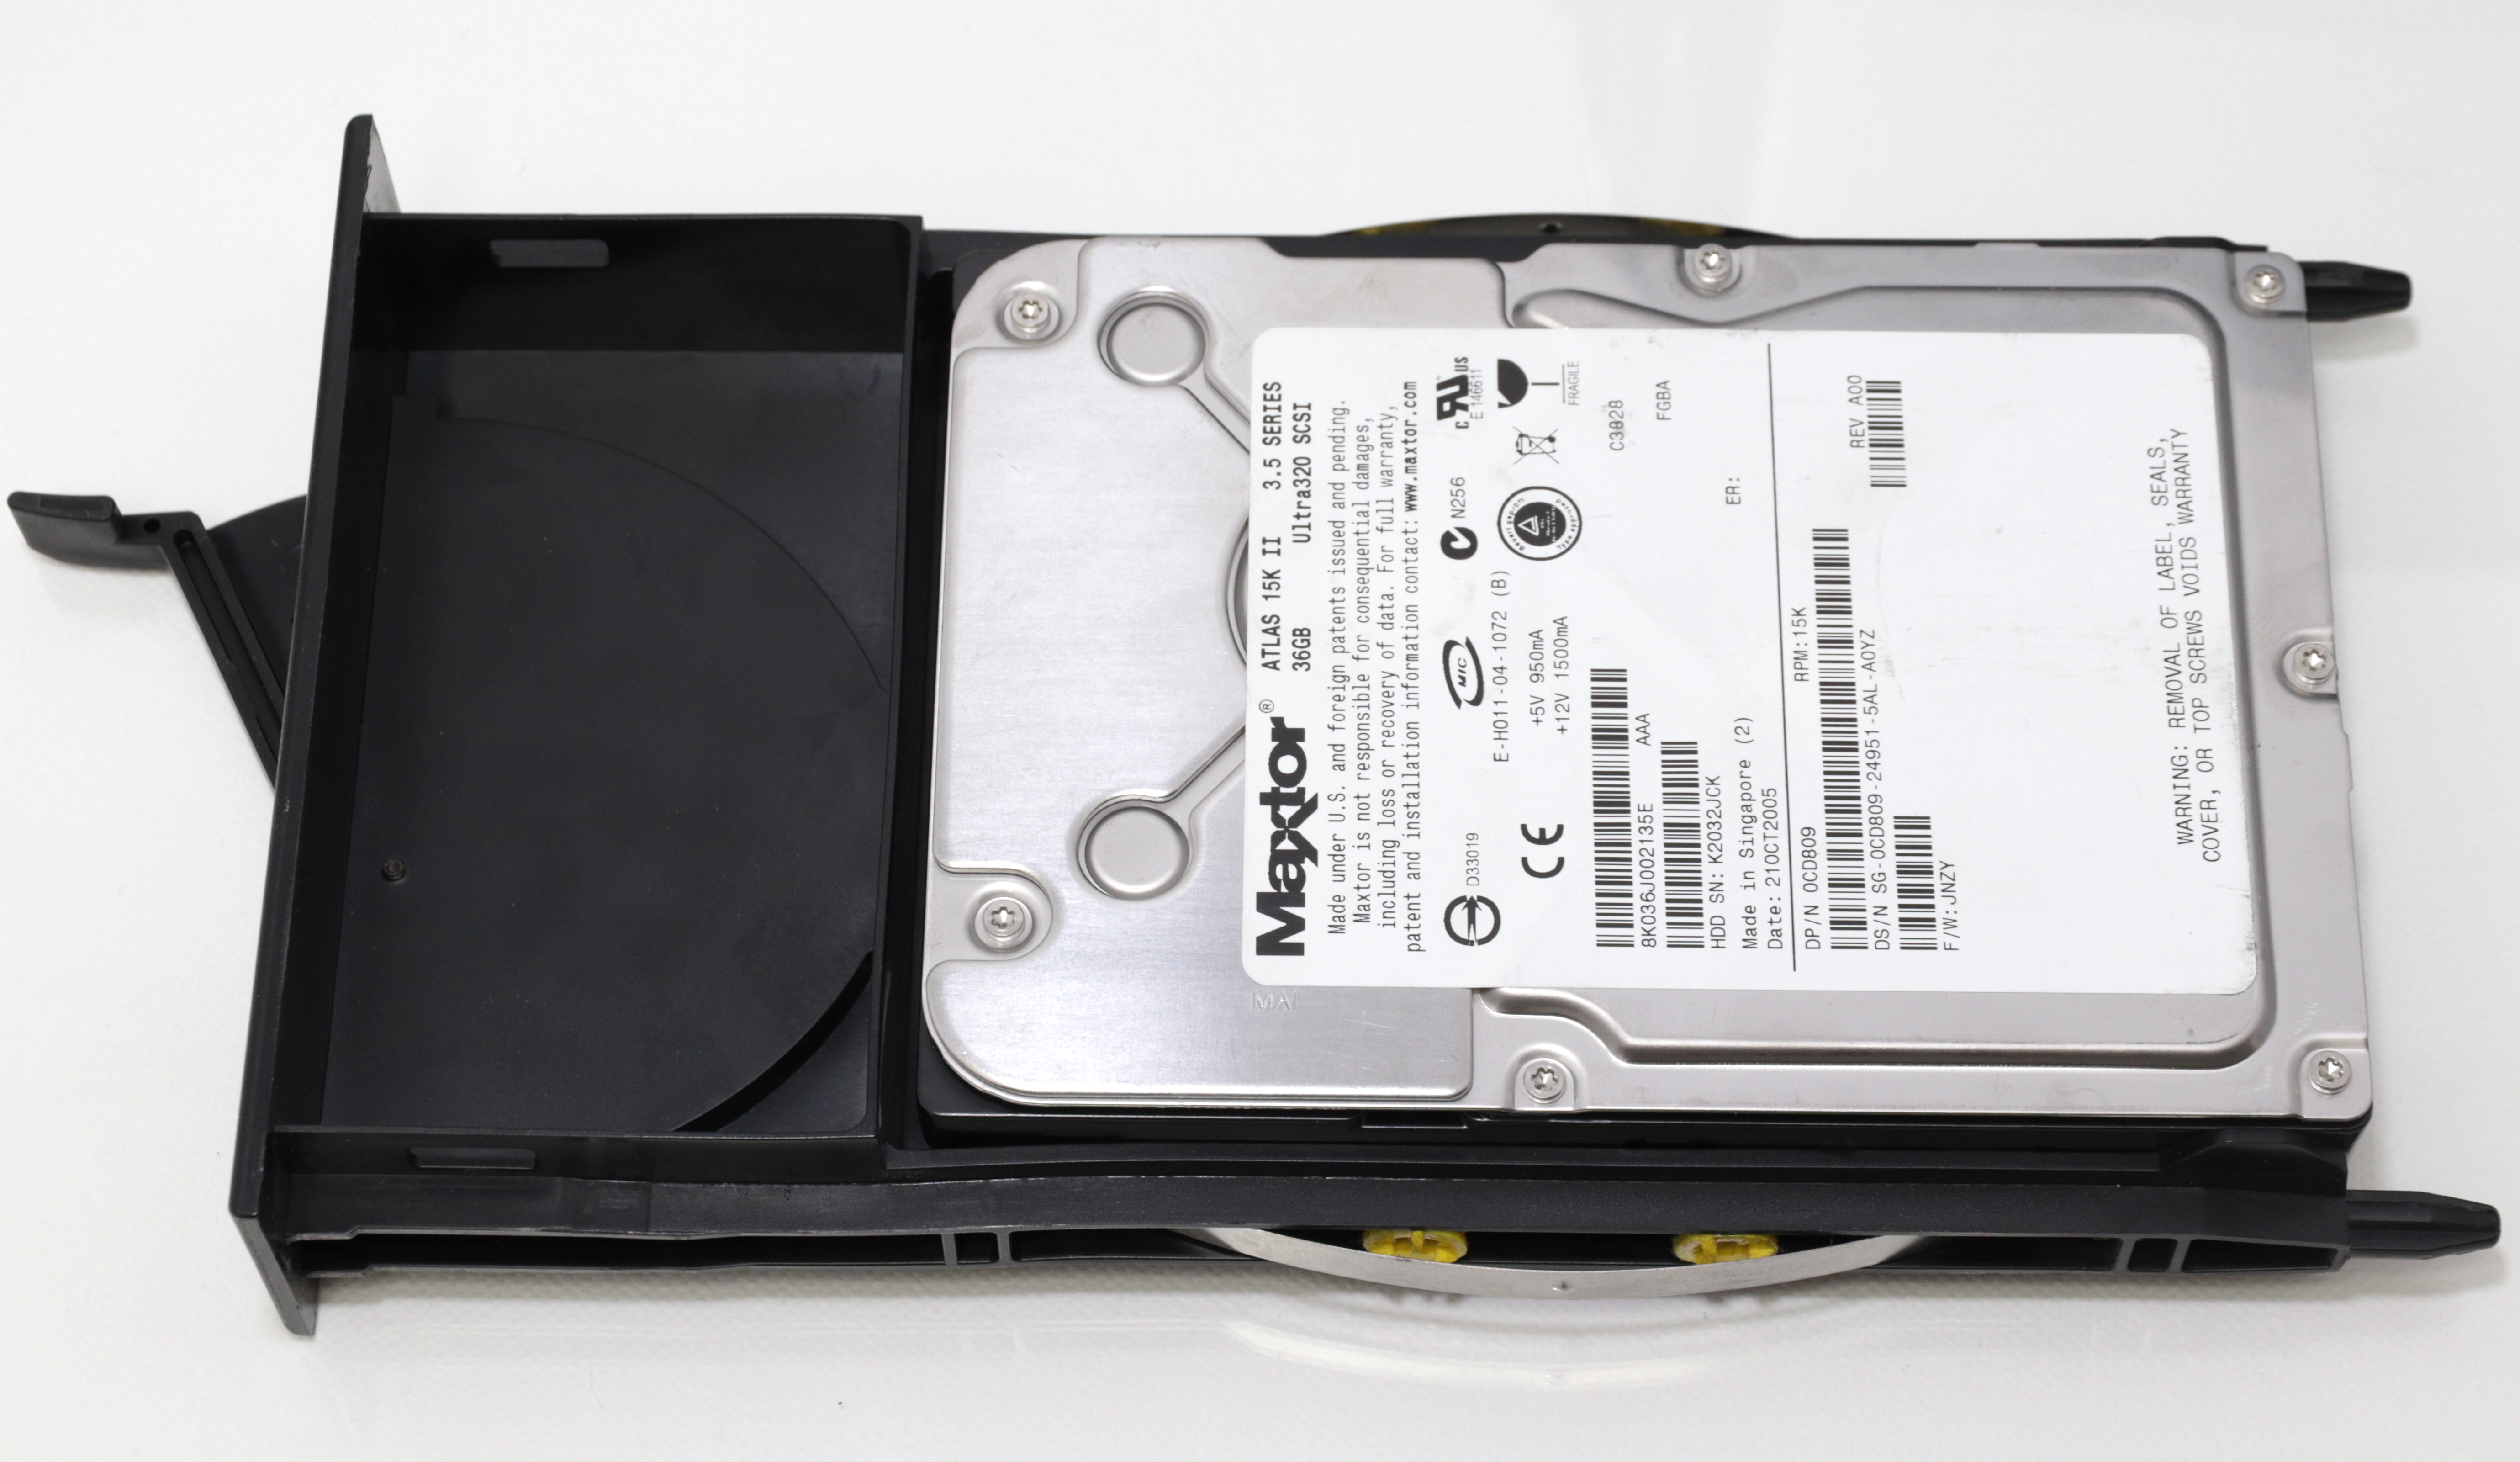 O2 HDD cage